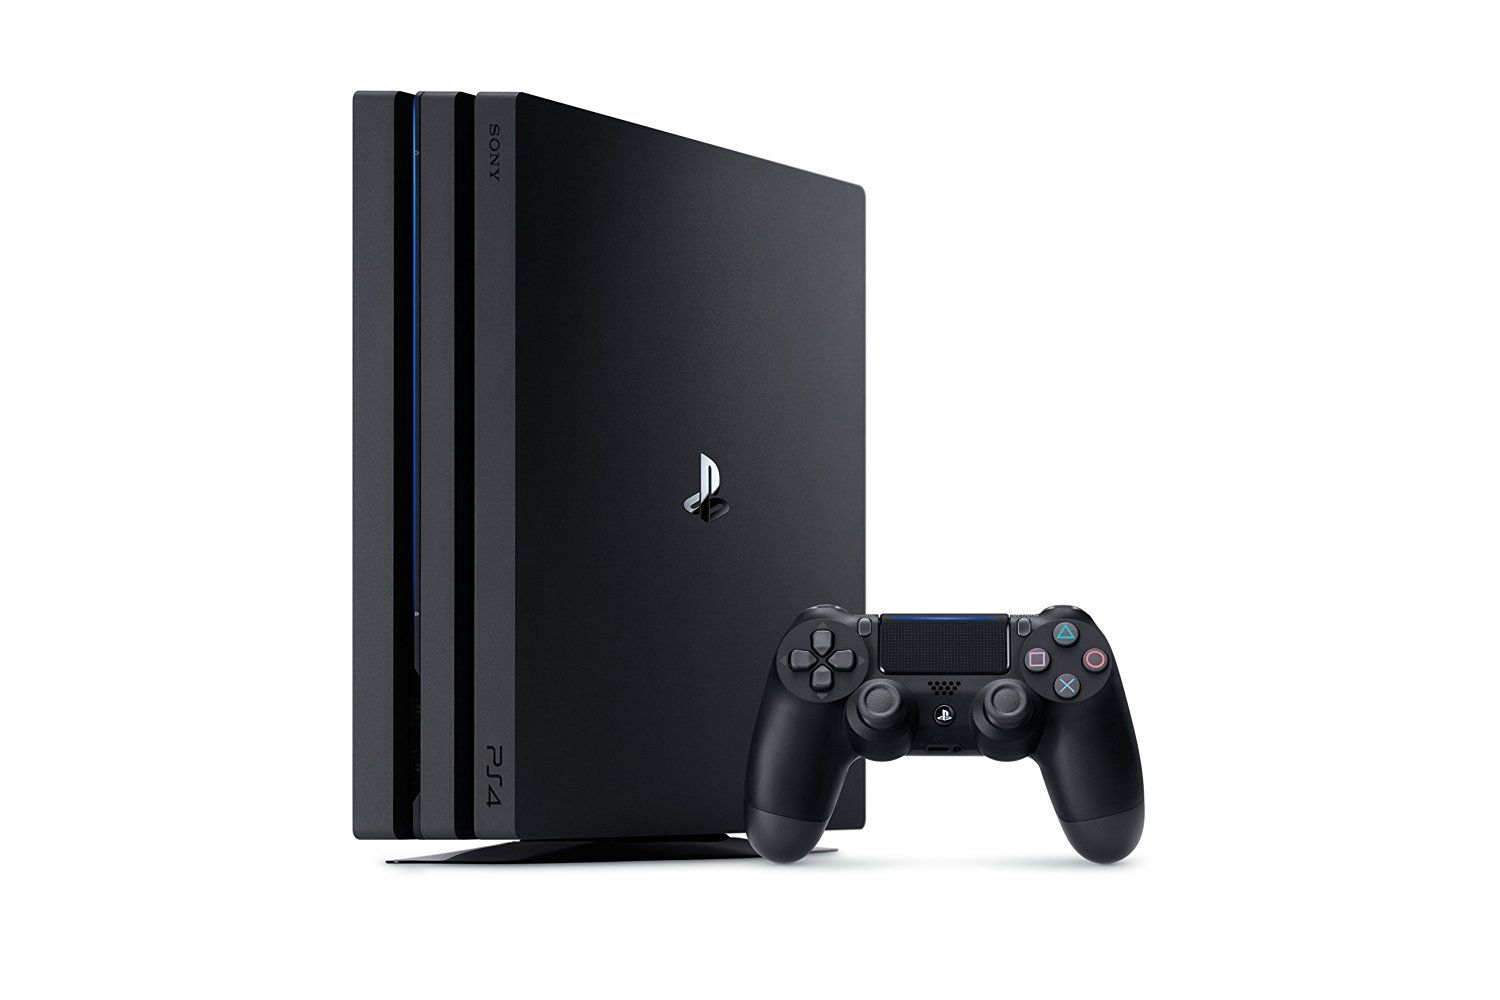 PS4 Pro native 4k? Chaotic and Confused